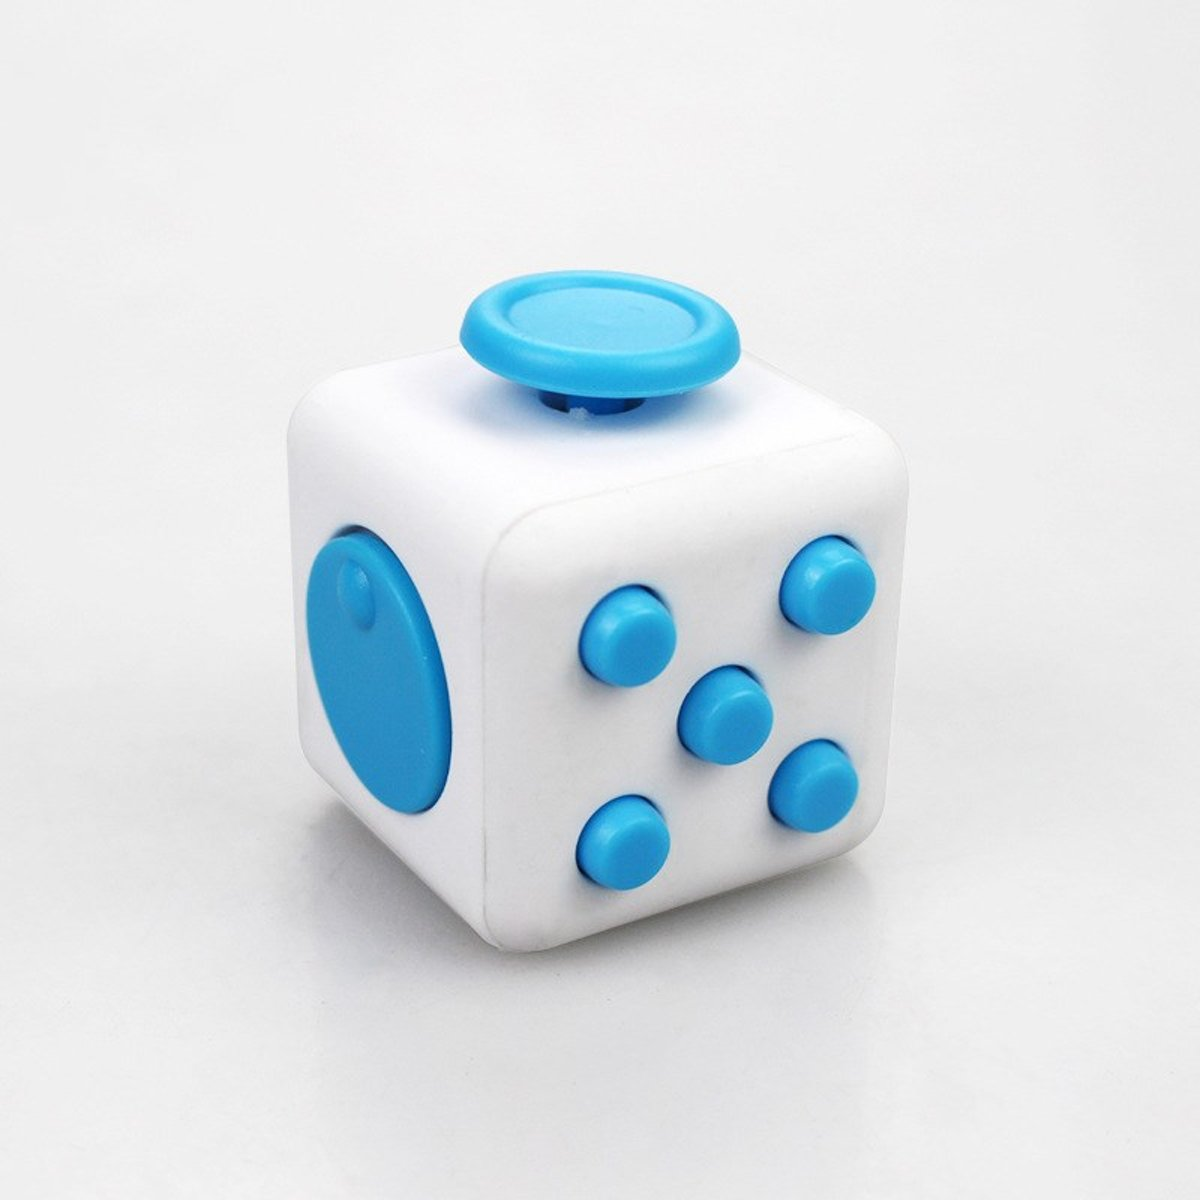 Cube Anti Stress Friemelkubus - Blauw/Wit